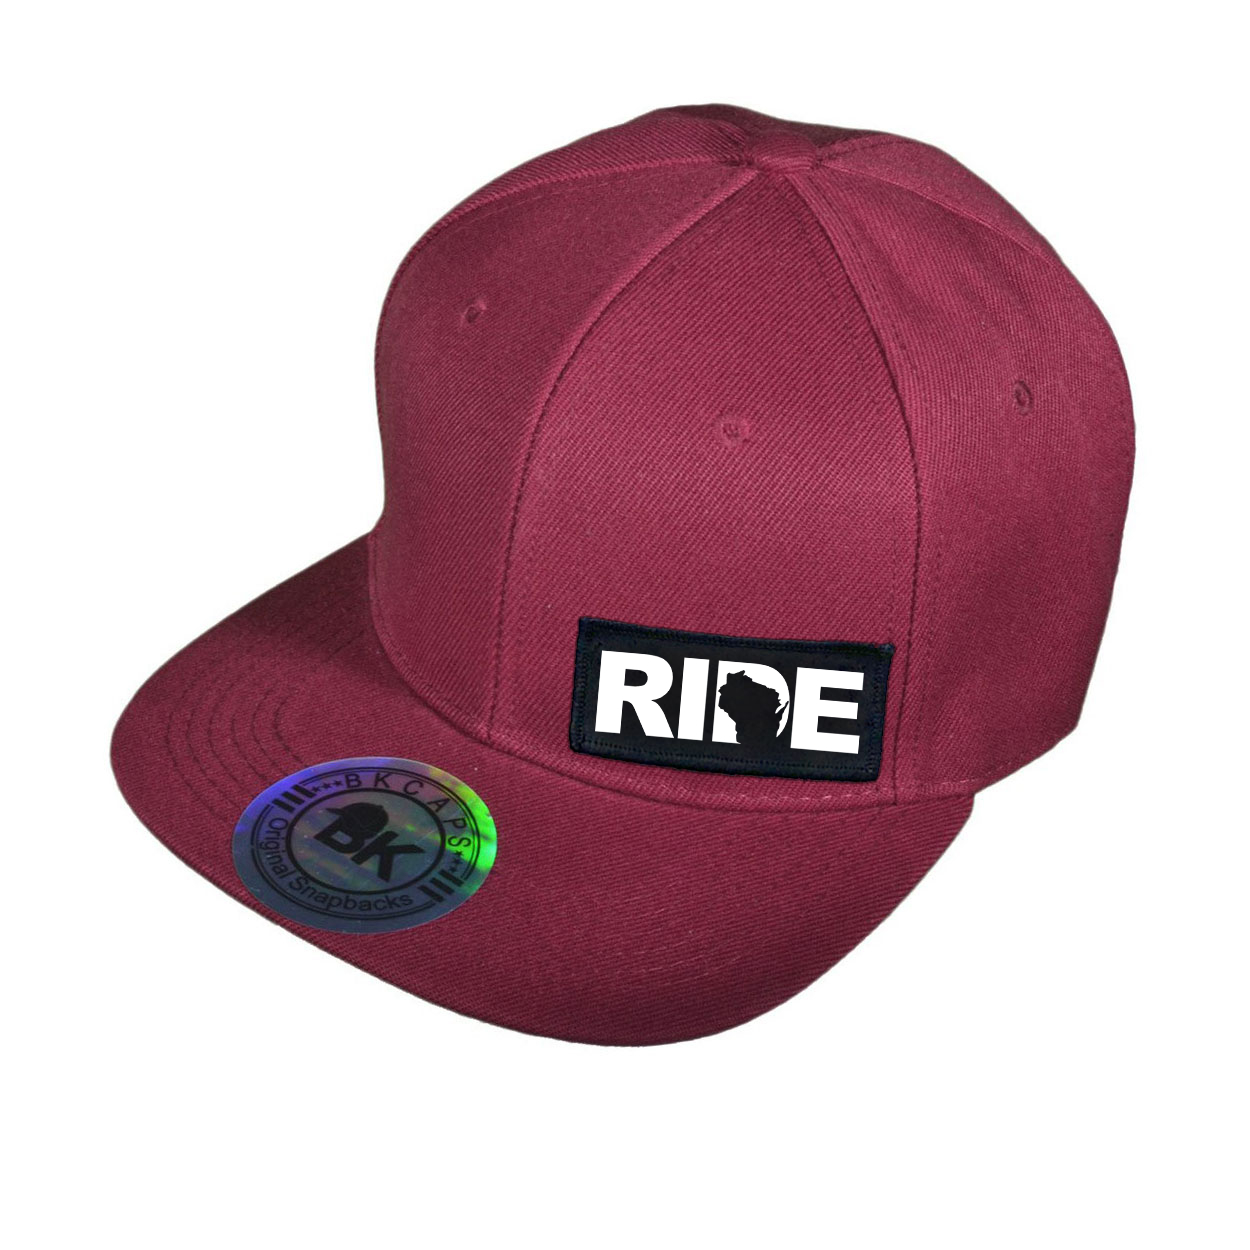 Ride Wisconsin Night Out Woven Patch Snapback Flat Brim Hat Burgundy (White Logo)